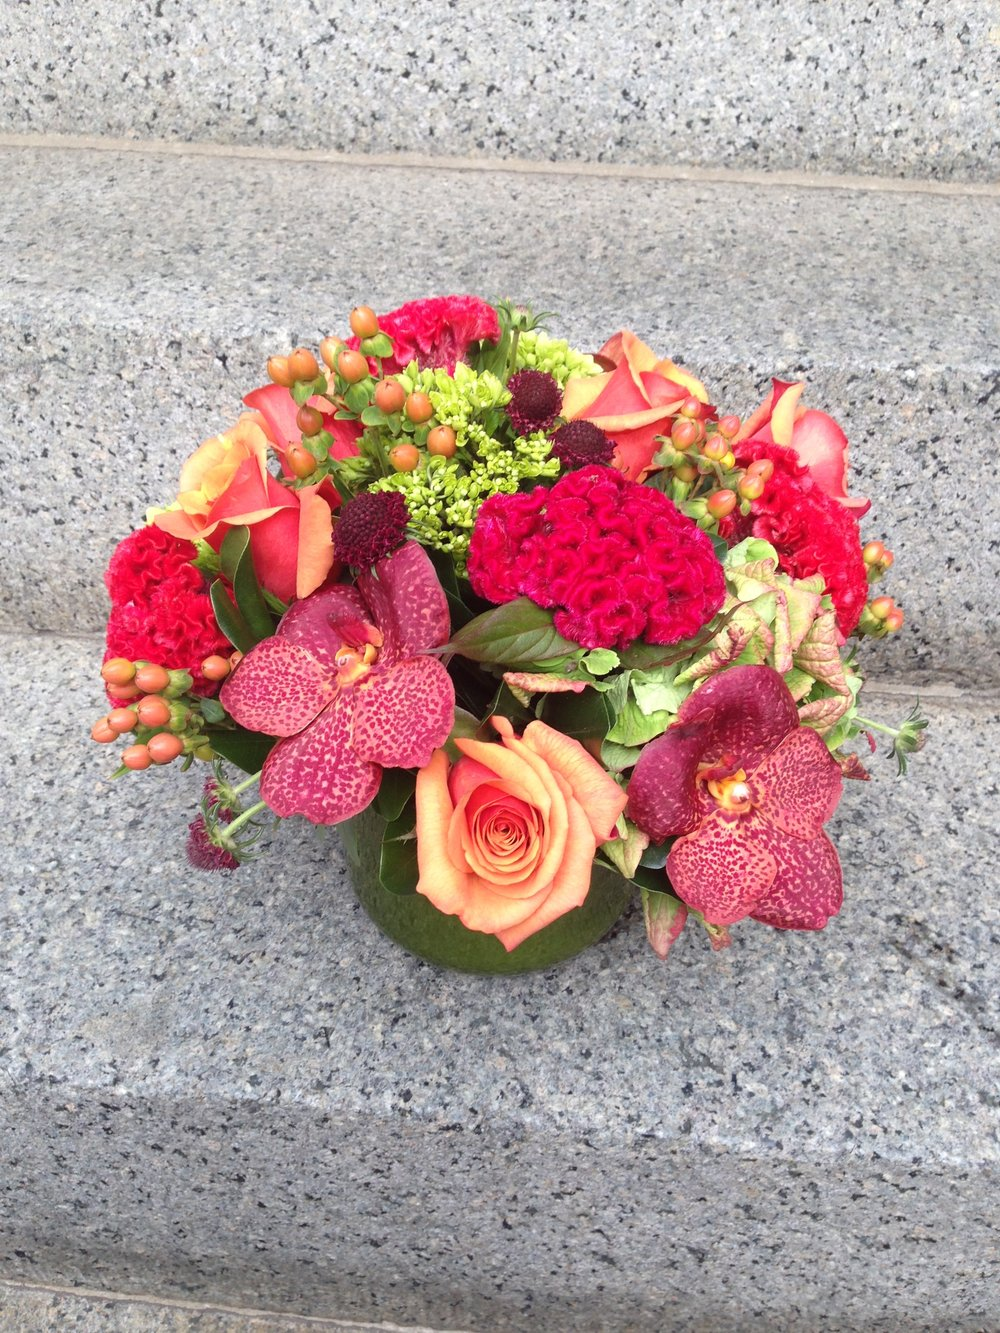 Warmer sunset tones are softened in this arrangement by the celosia flower, which has a fuzzy texture to it.